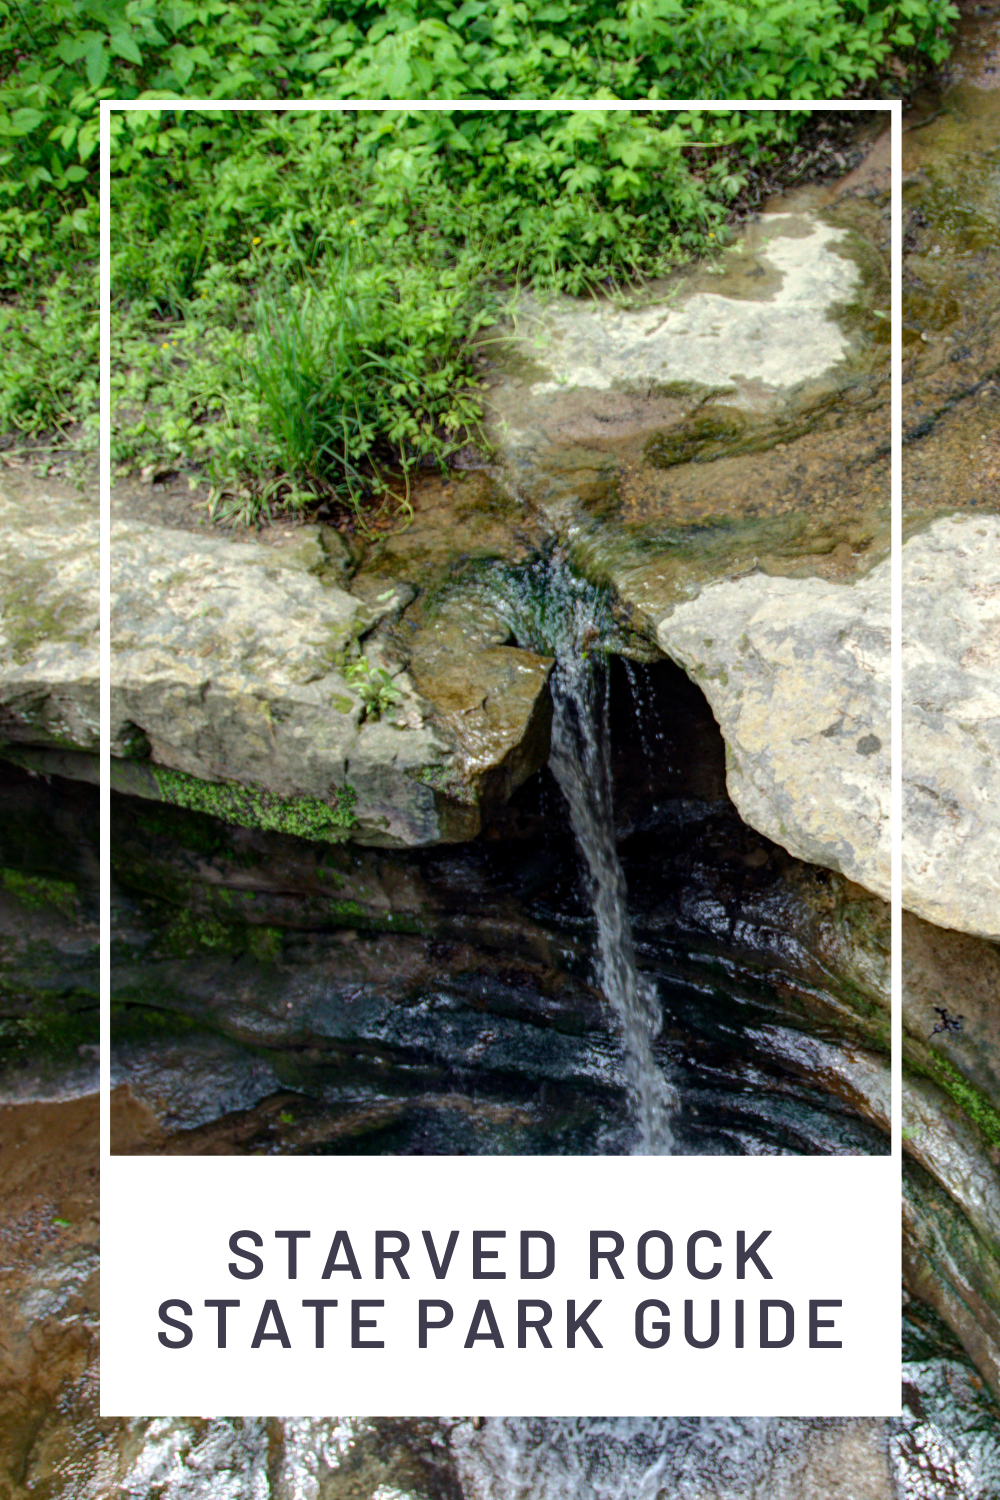 Starved rock state park canyon